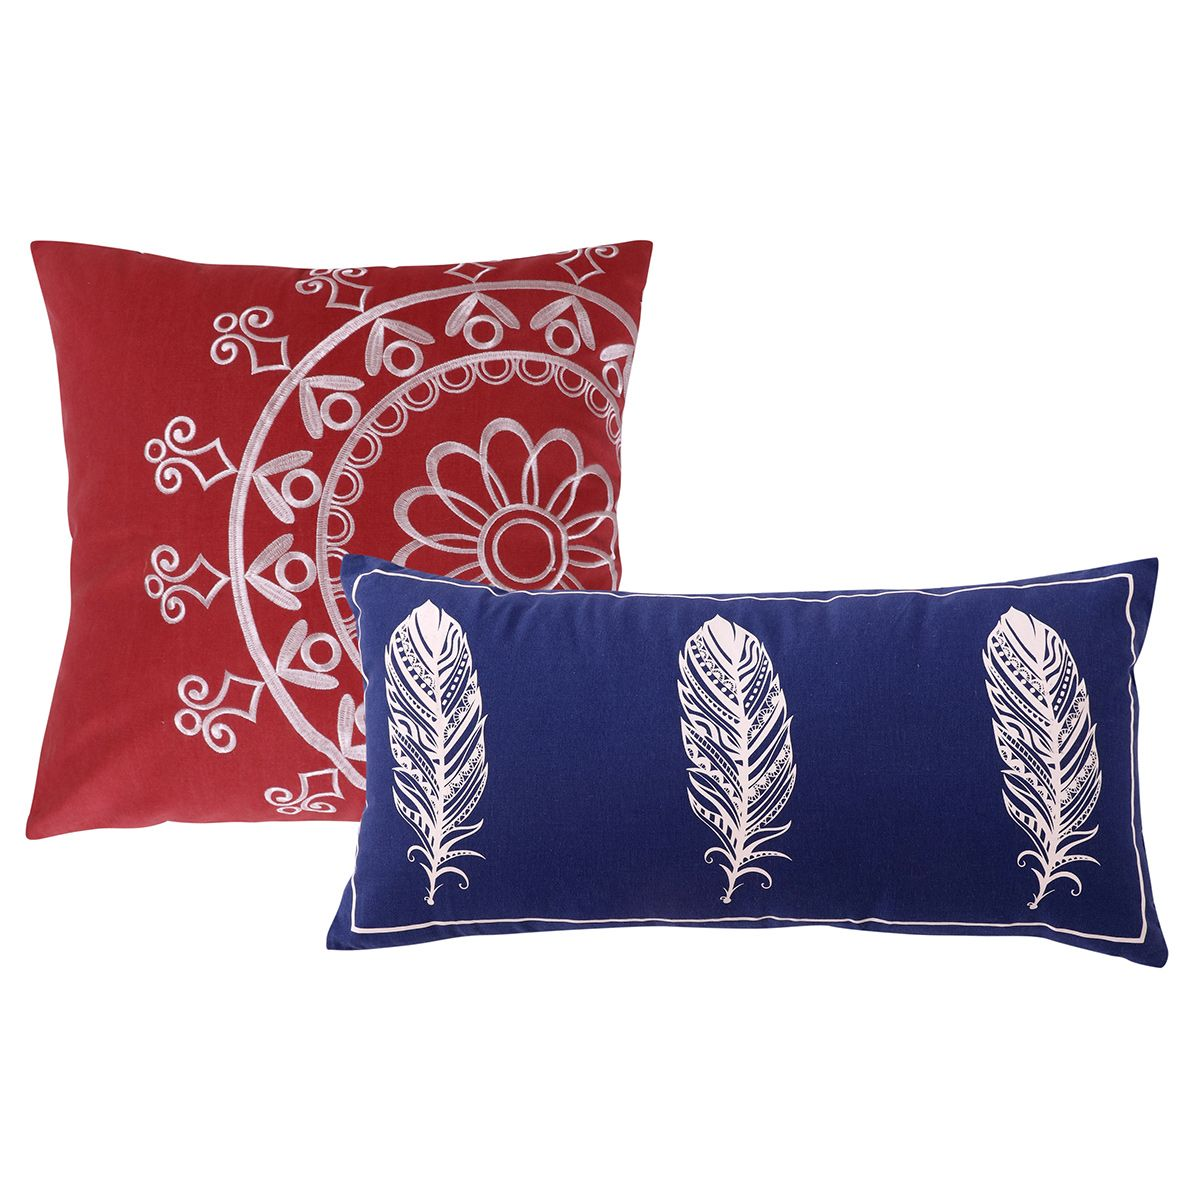 Bright Falling Feathers Pillows - Set of 2